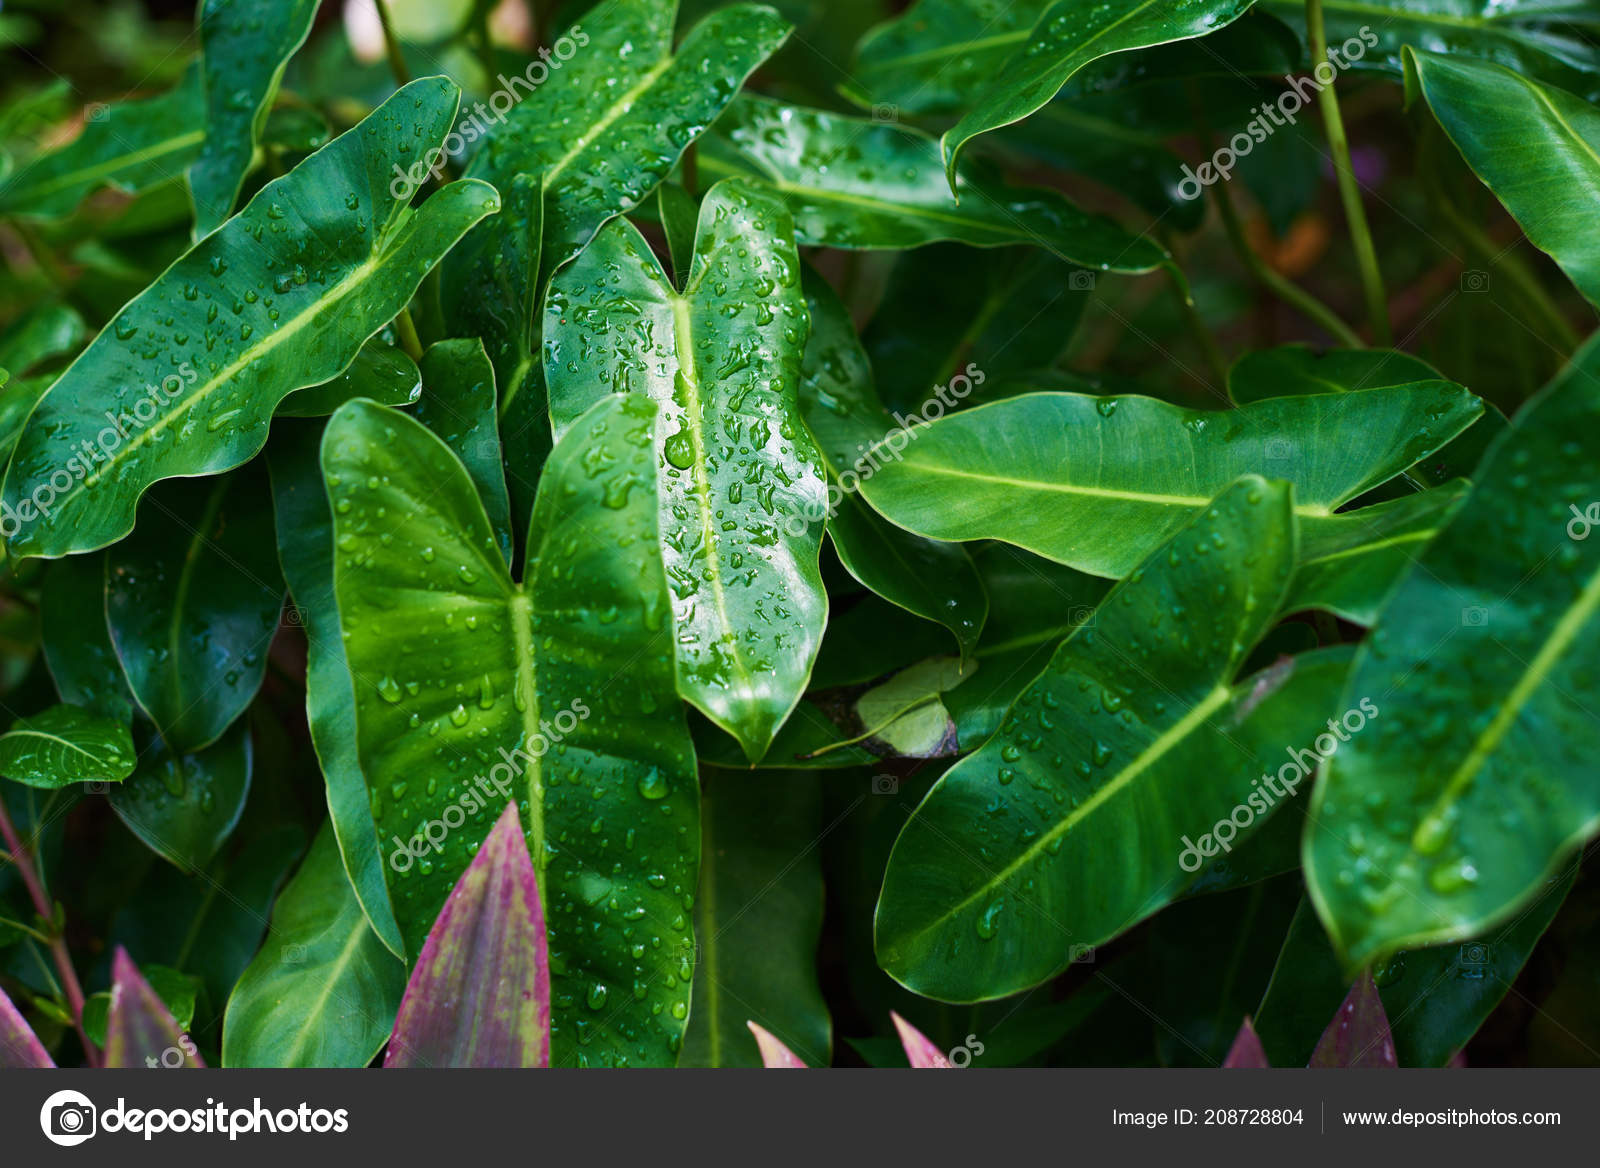 Pictures Foliage Plant Leaves Tropical Plants Rain Drops Shade